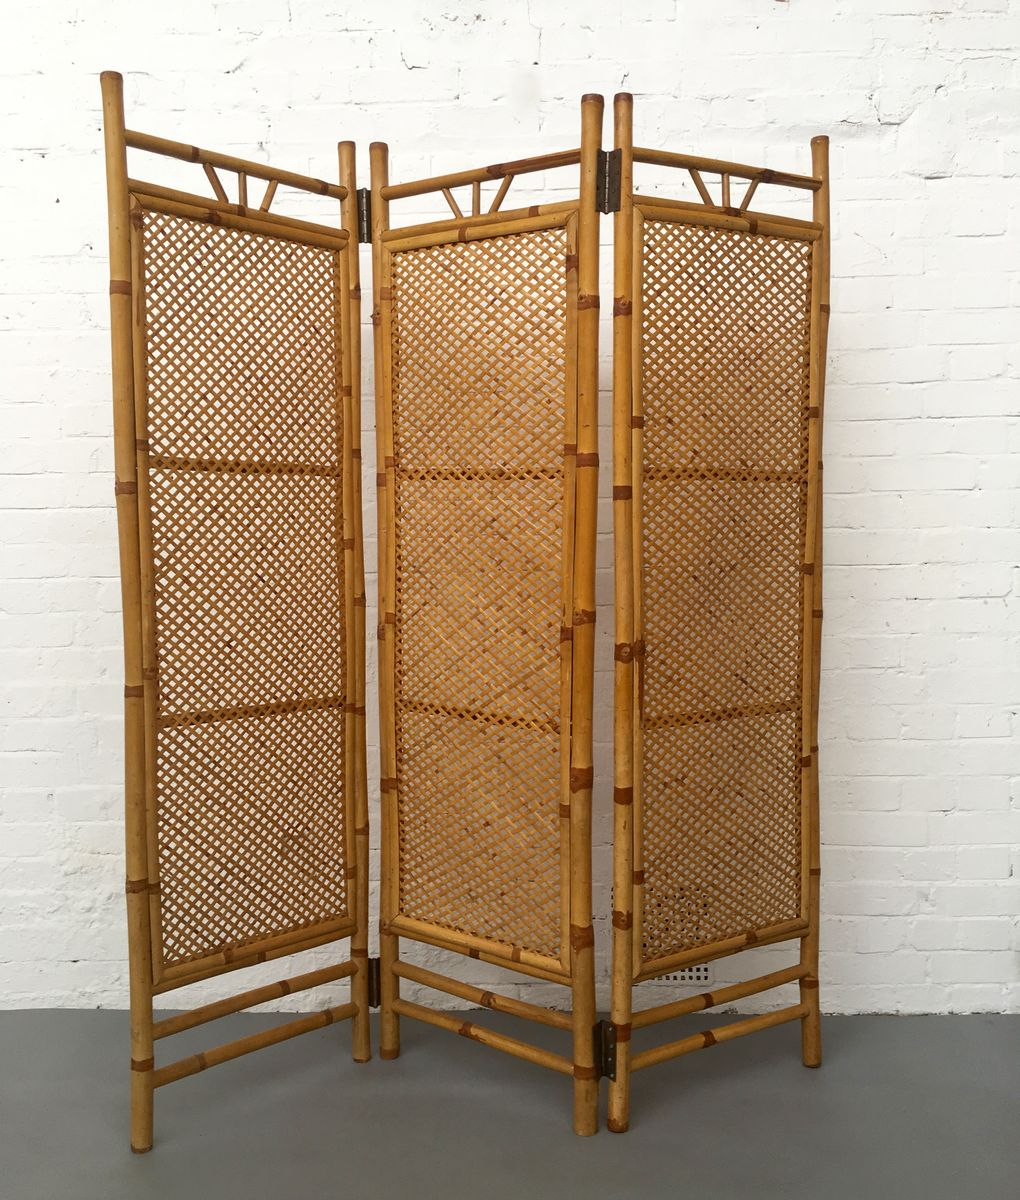 Dutch Rattan Bamboo Foldable Room Divider 1960s Dutch Rattan Bamboo Foldable Room